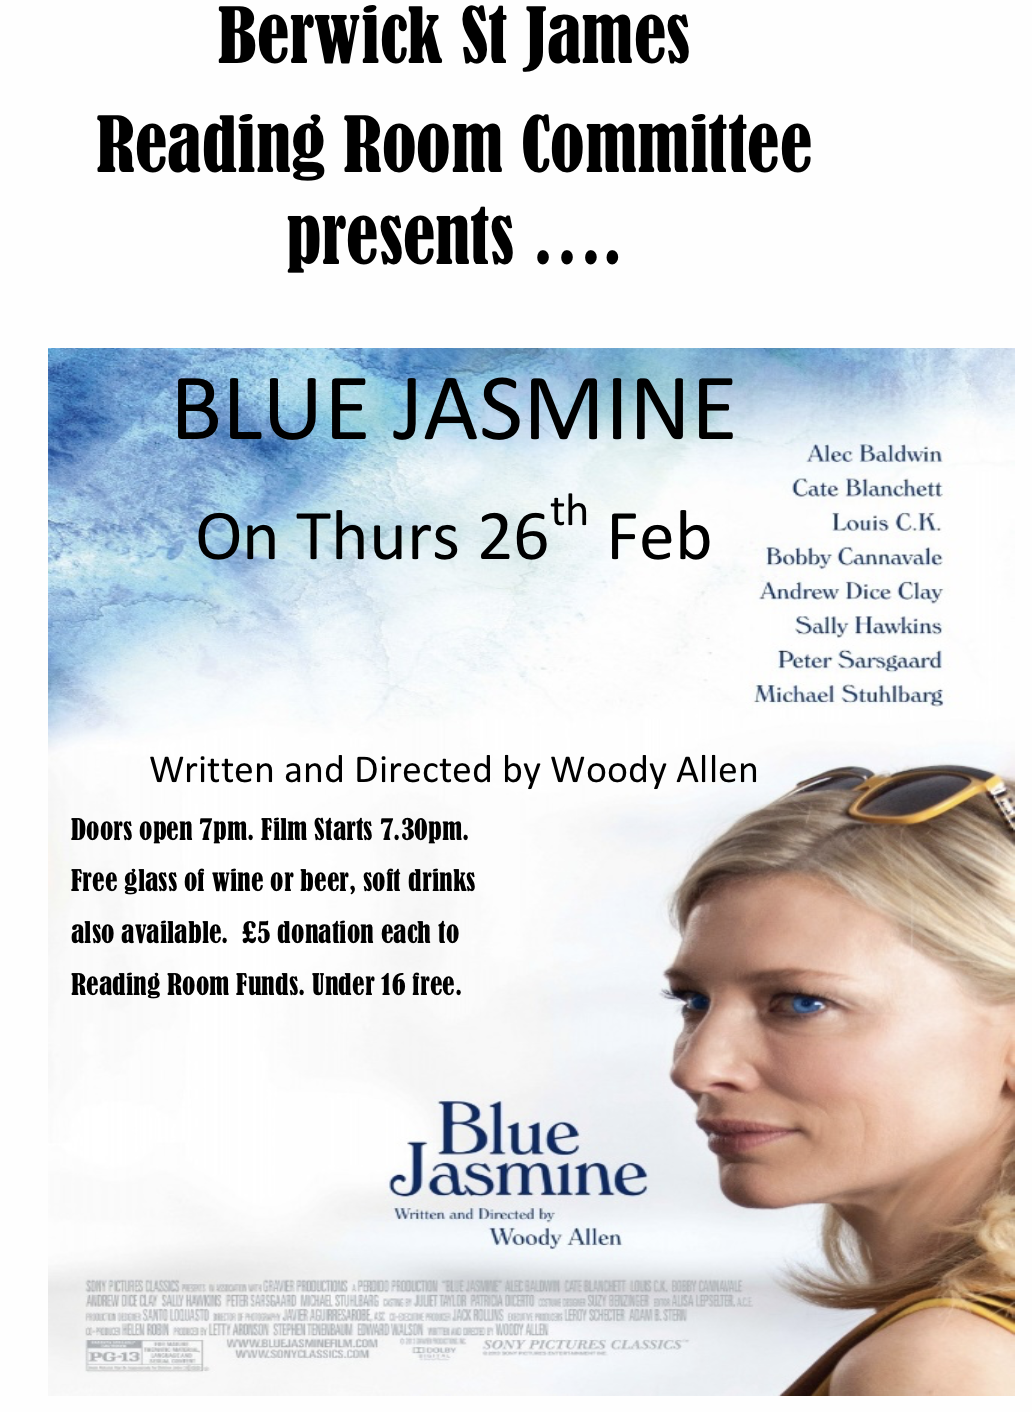 Berwick St James Parish Blue Jasmine